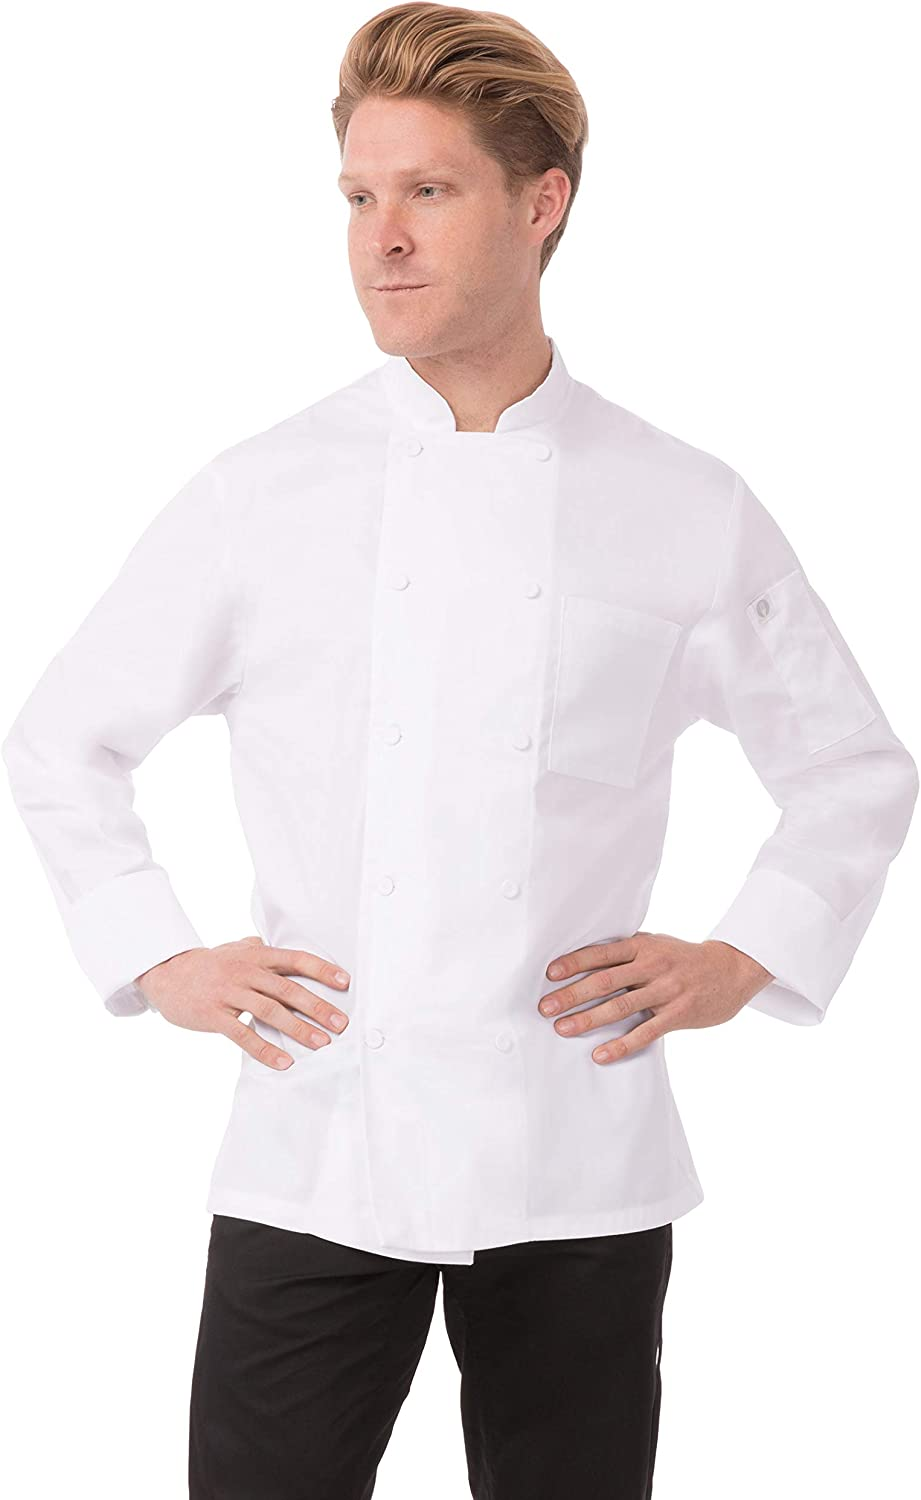 Chef Works Unisex-Adult's Calgary Cool Vent Chef Coat, White, 5XL: Clothing, Shoes & Jewelry